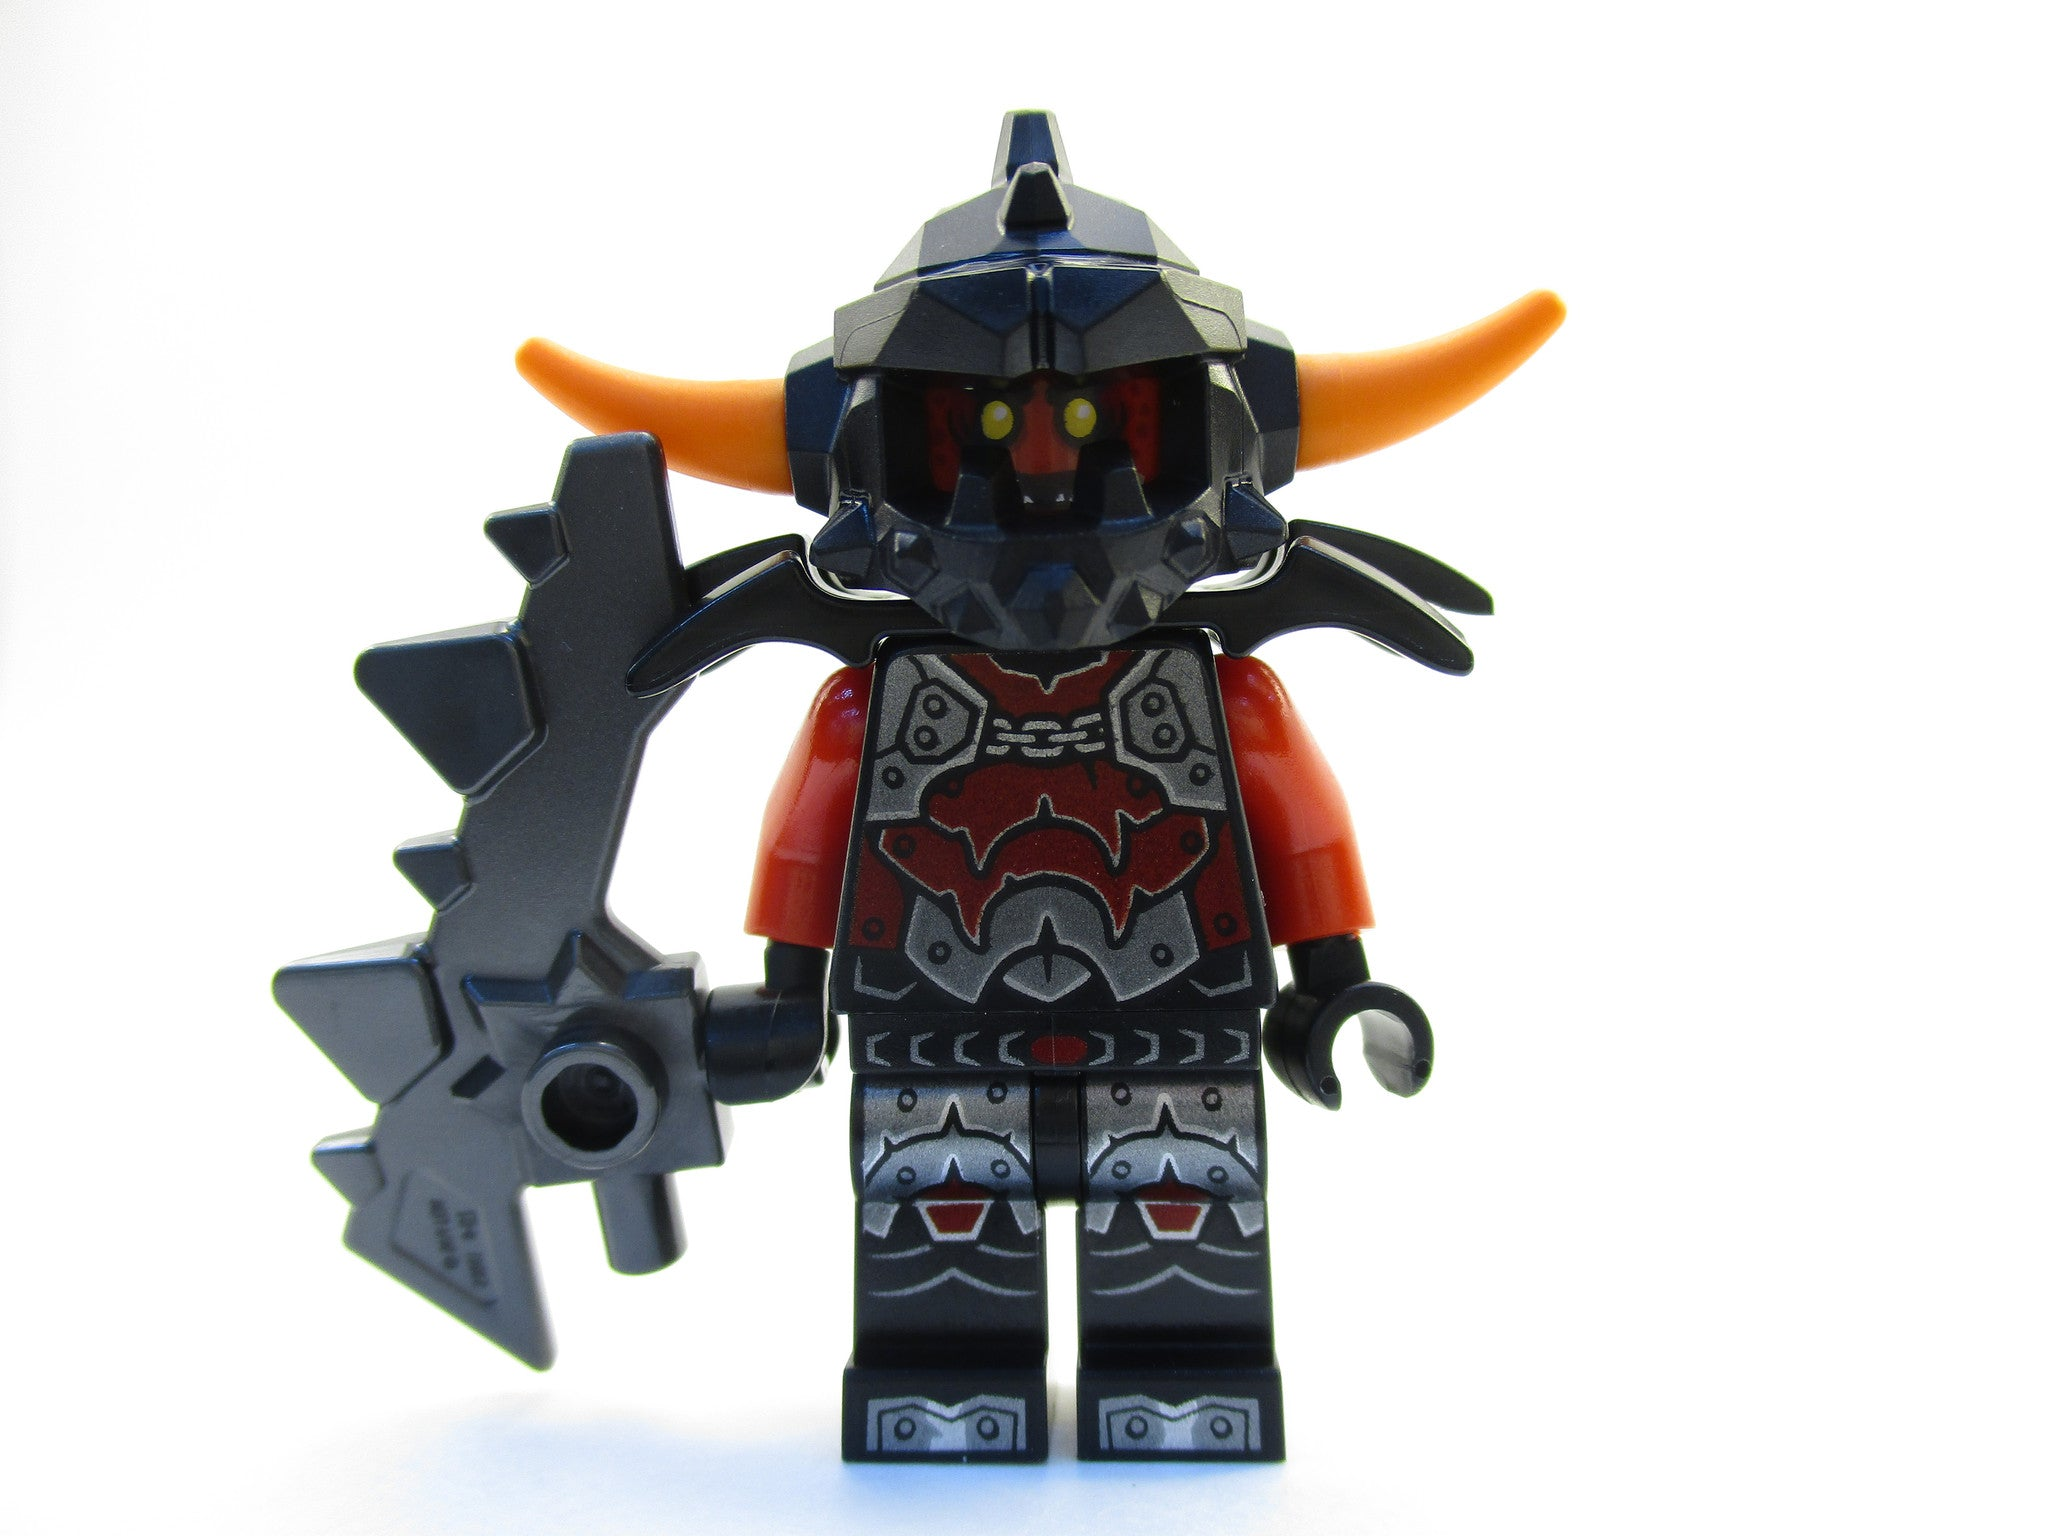 LEGO Nexo Knights Ash Attacker Minifigure 70322 Mini Fig with Weapon